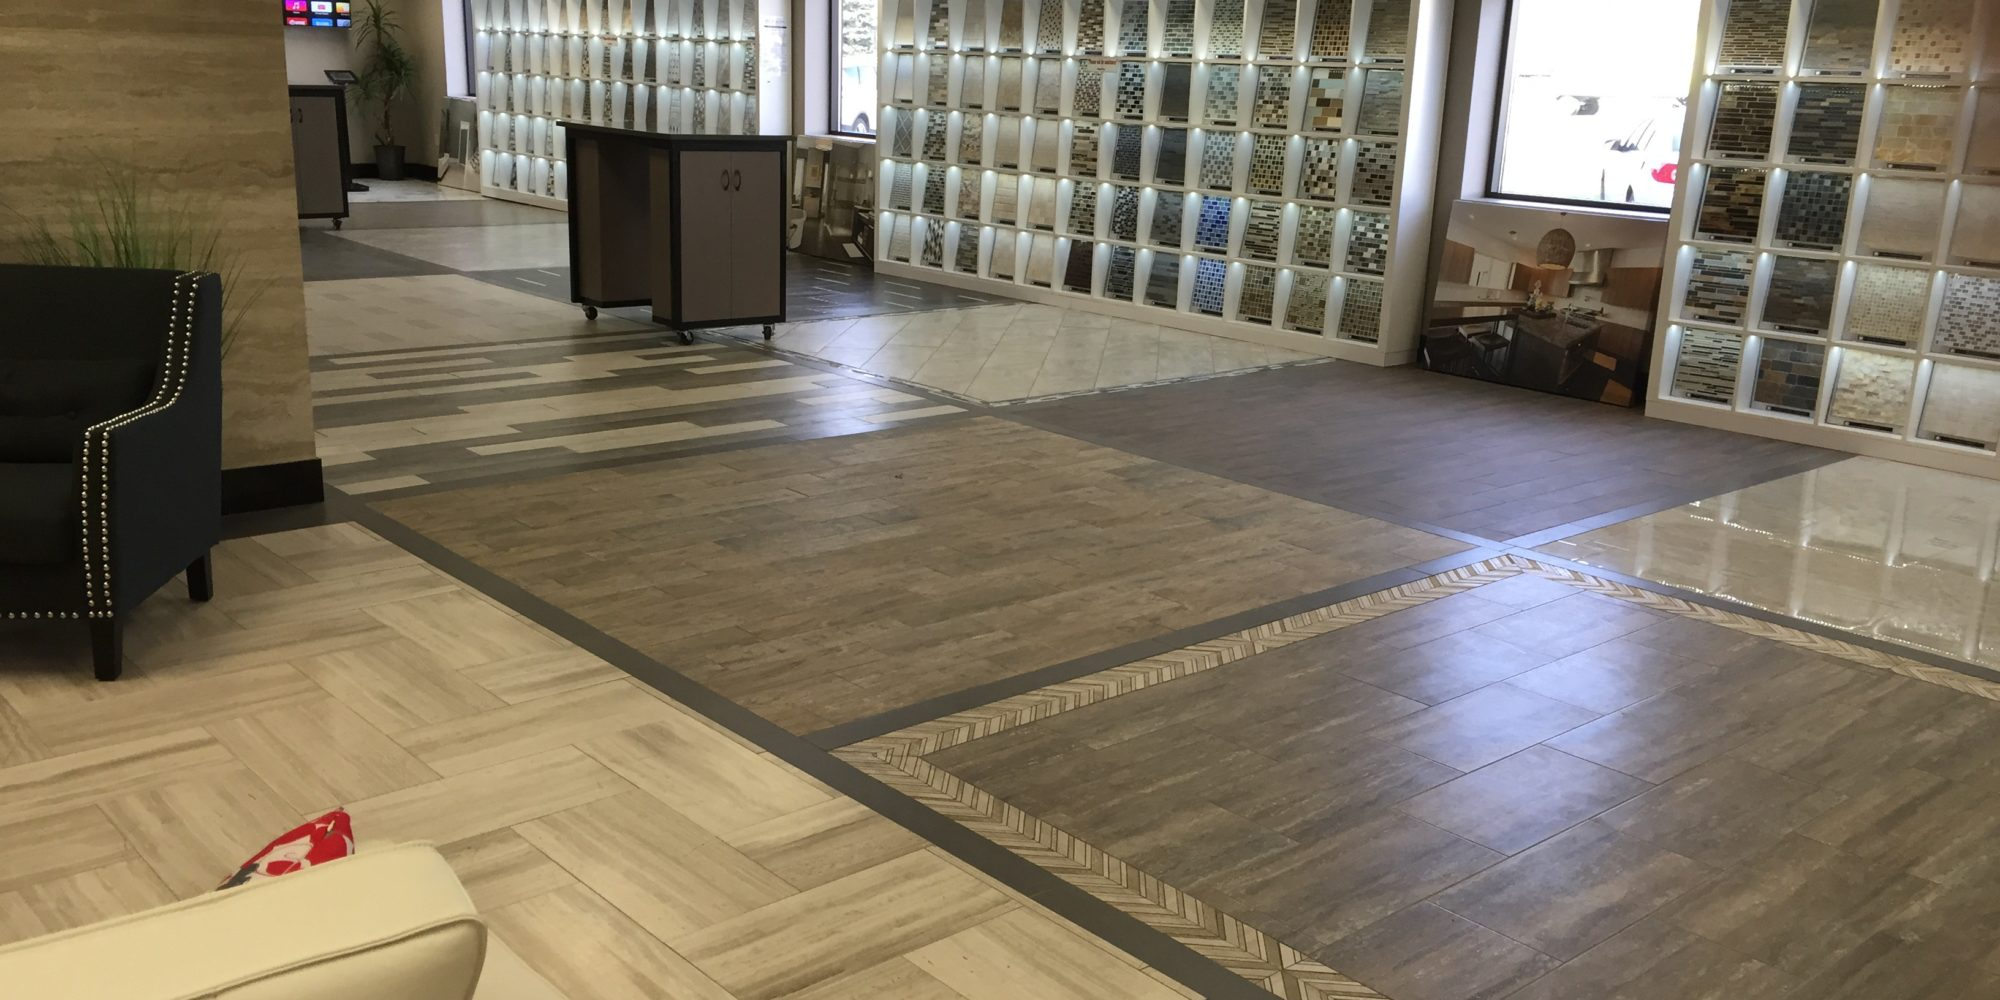 Commercial Tile Installation Company Touchdown Tile